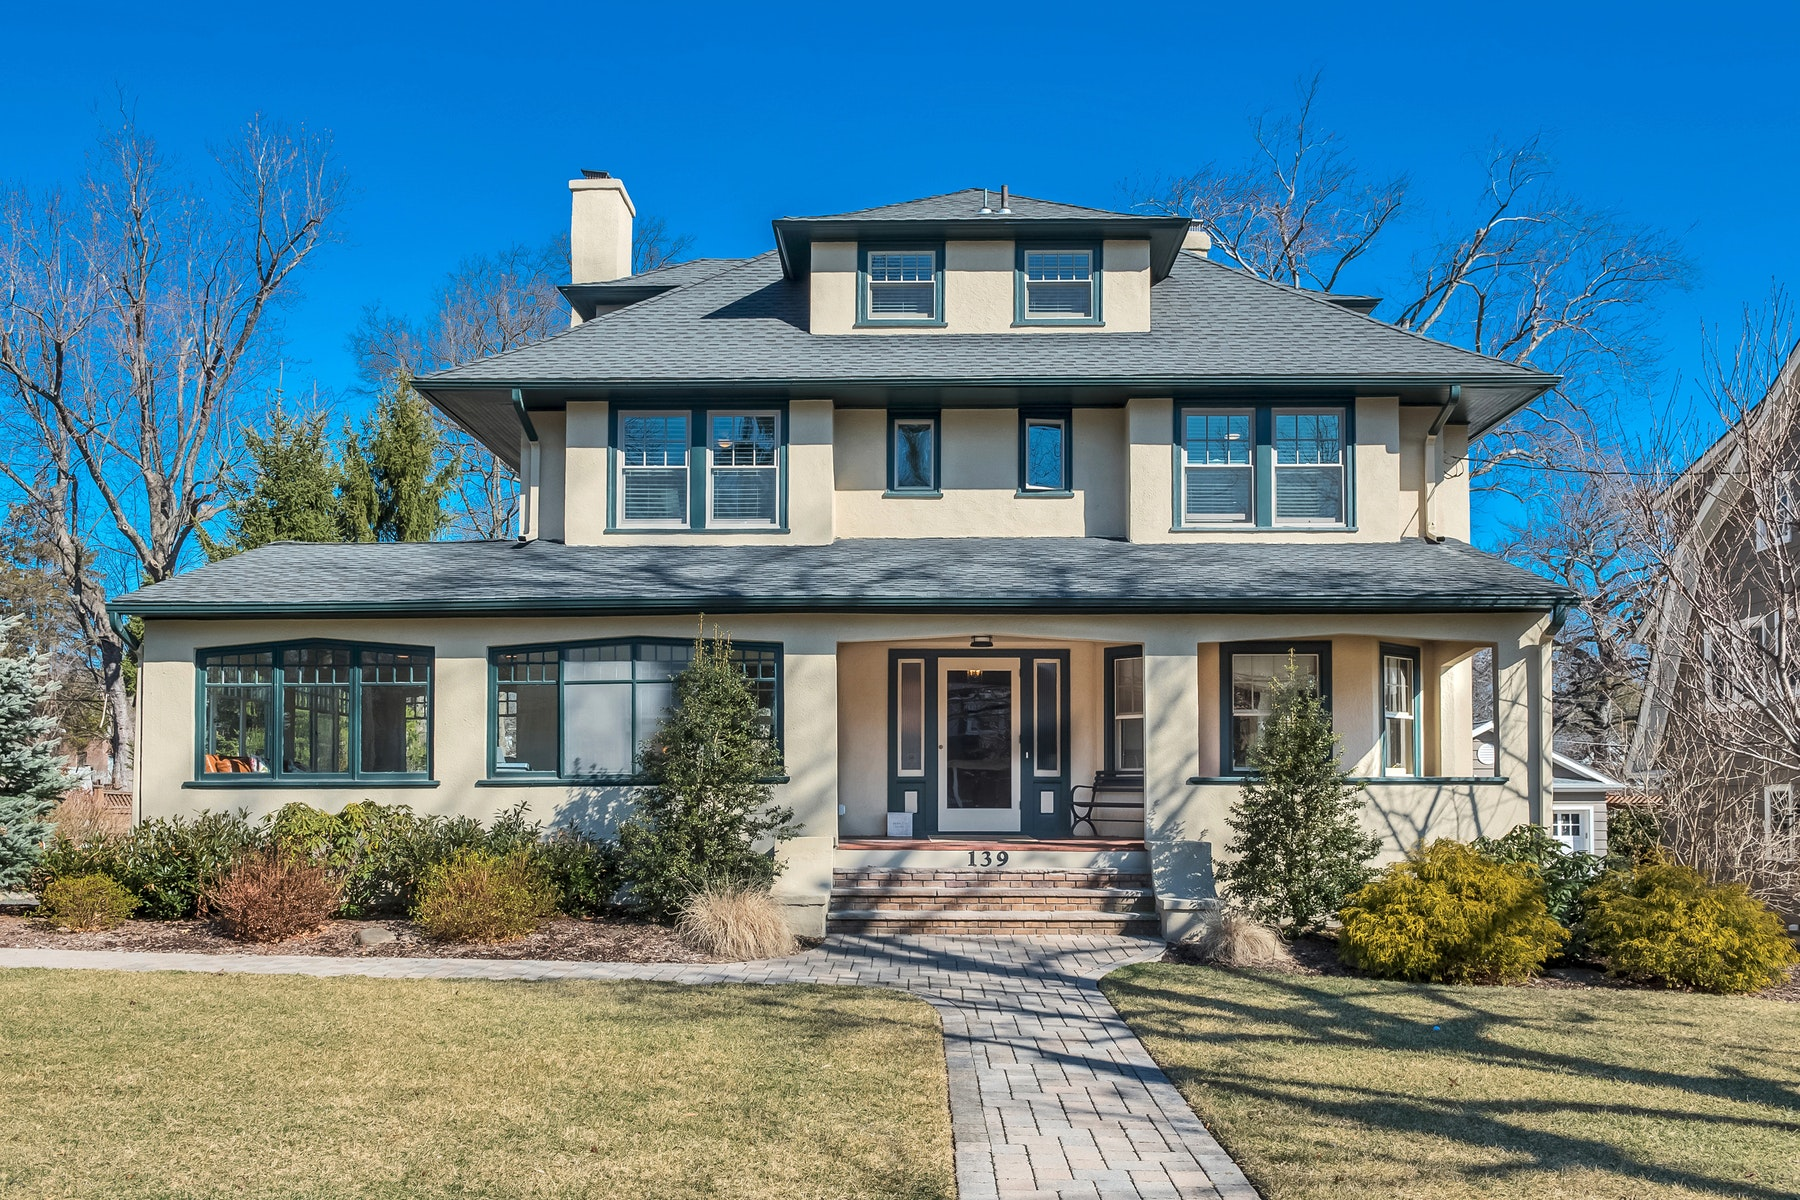 واحد منزل الأسرة للـ Sale في Craftsman Colonial in Montclair 139 Cooper Avenue, Montclair, New Jersey, 07043 United States